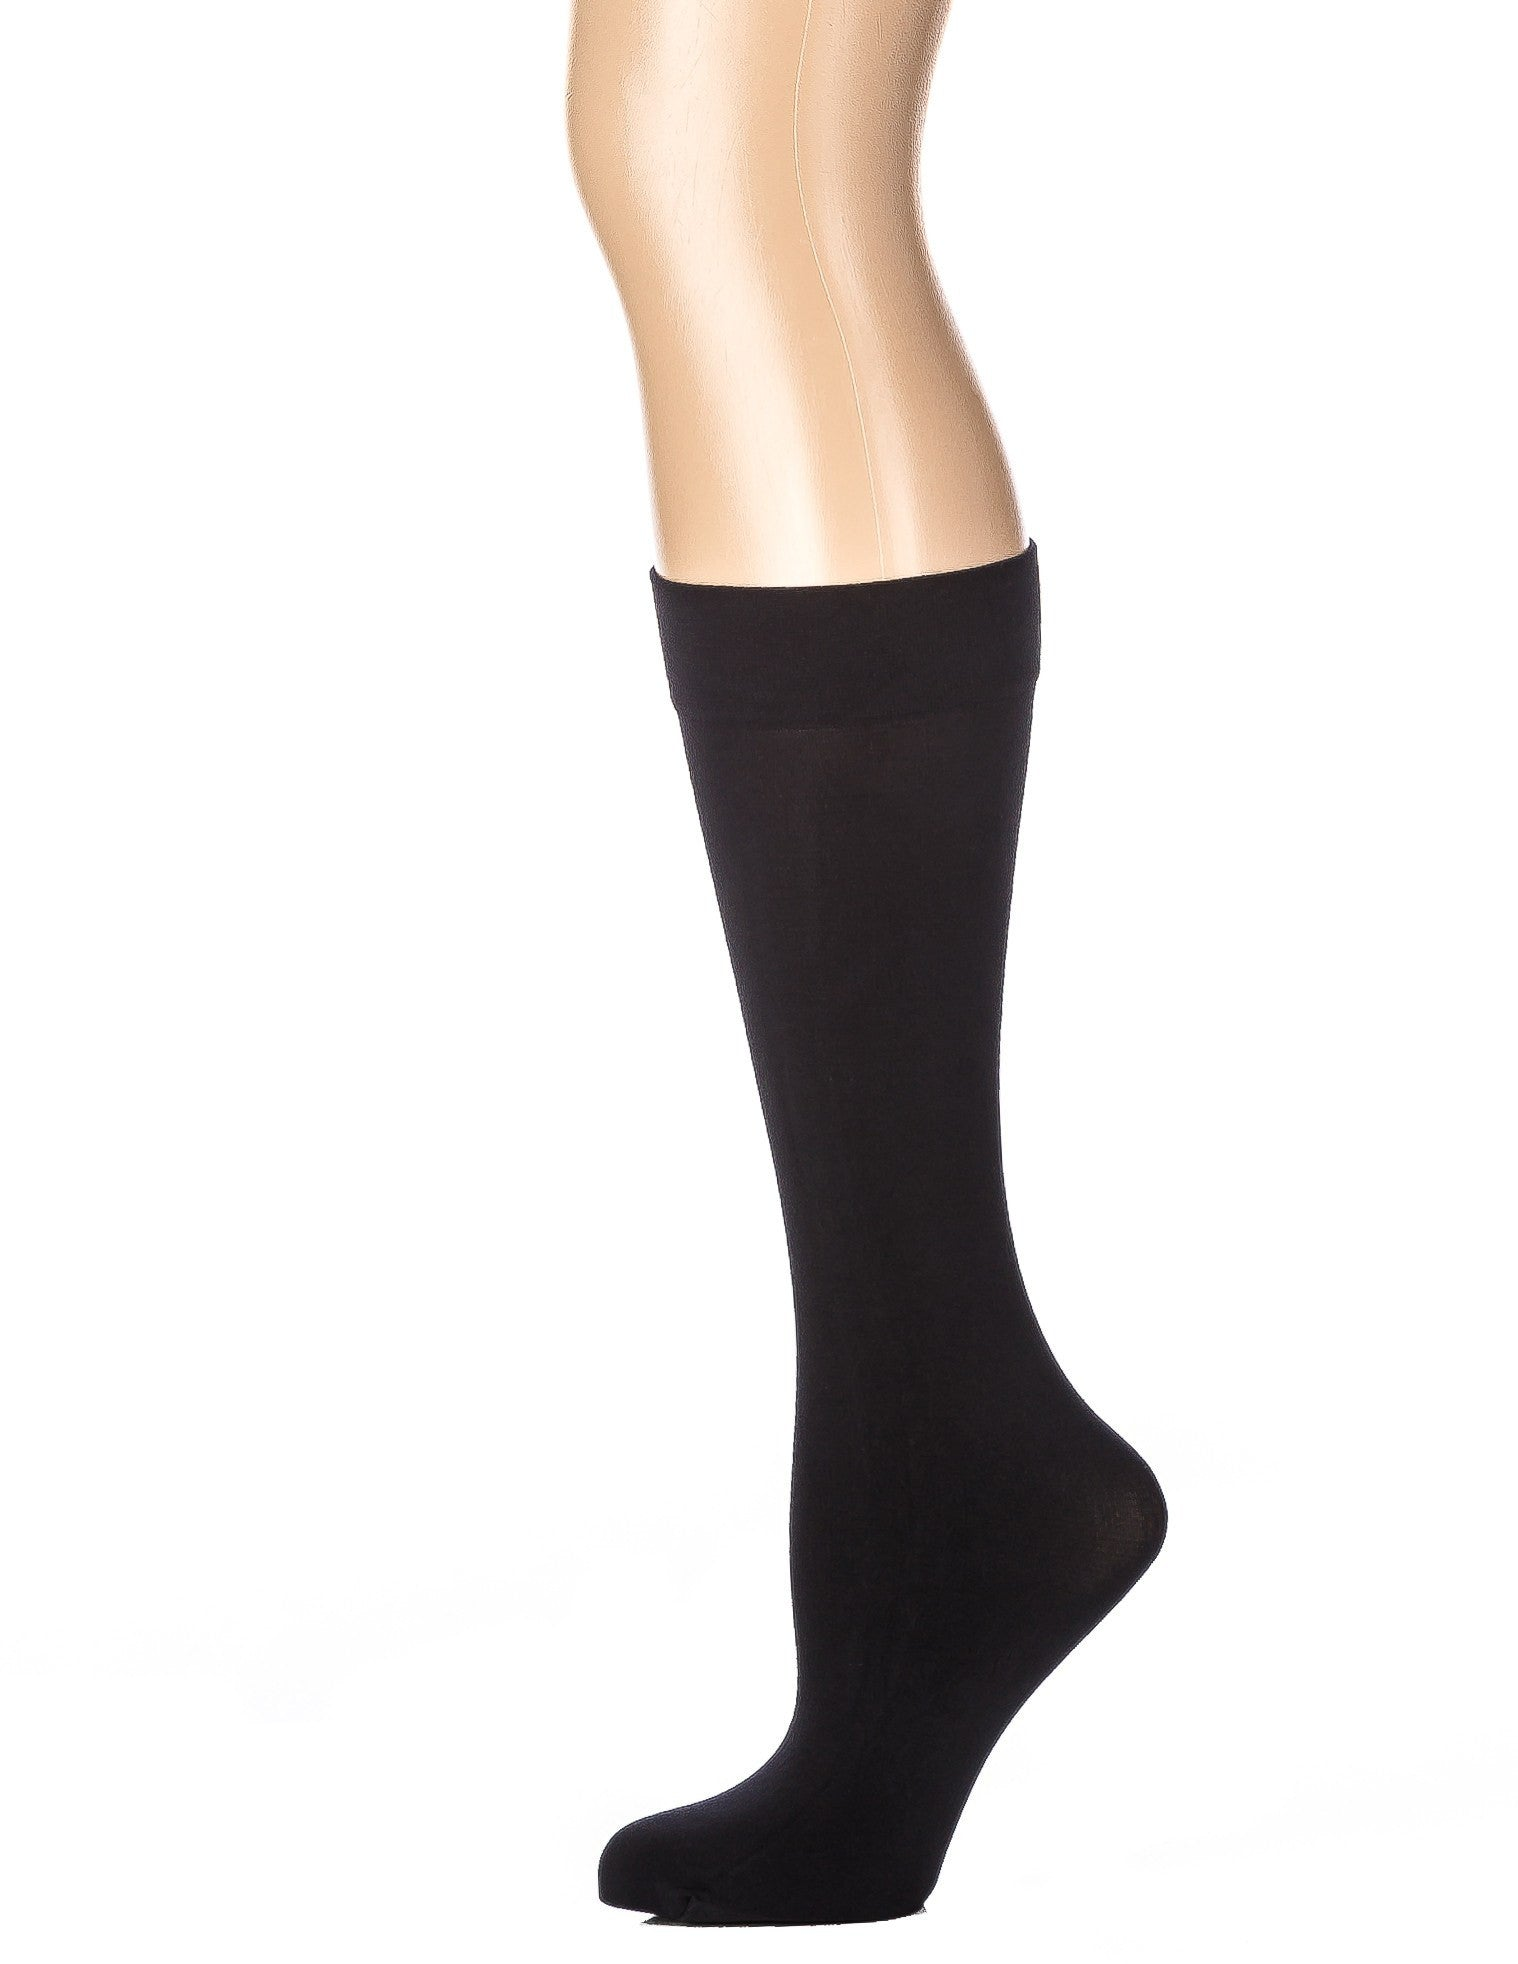 Women's Microfiber Anti-Pilling Knee-Hi Trouser Socks